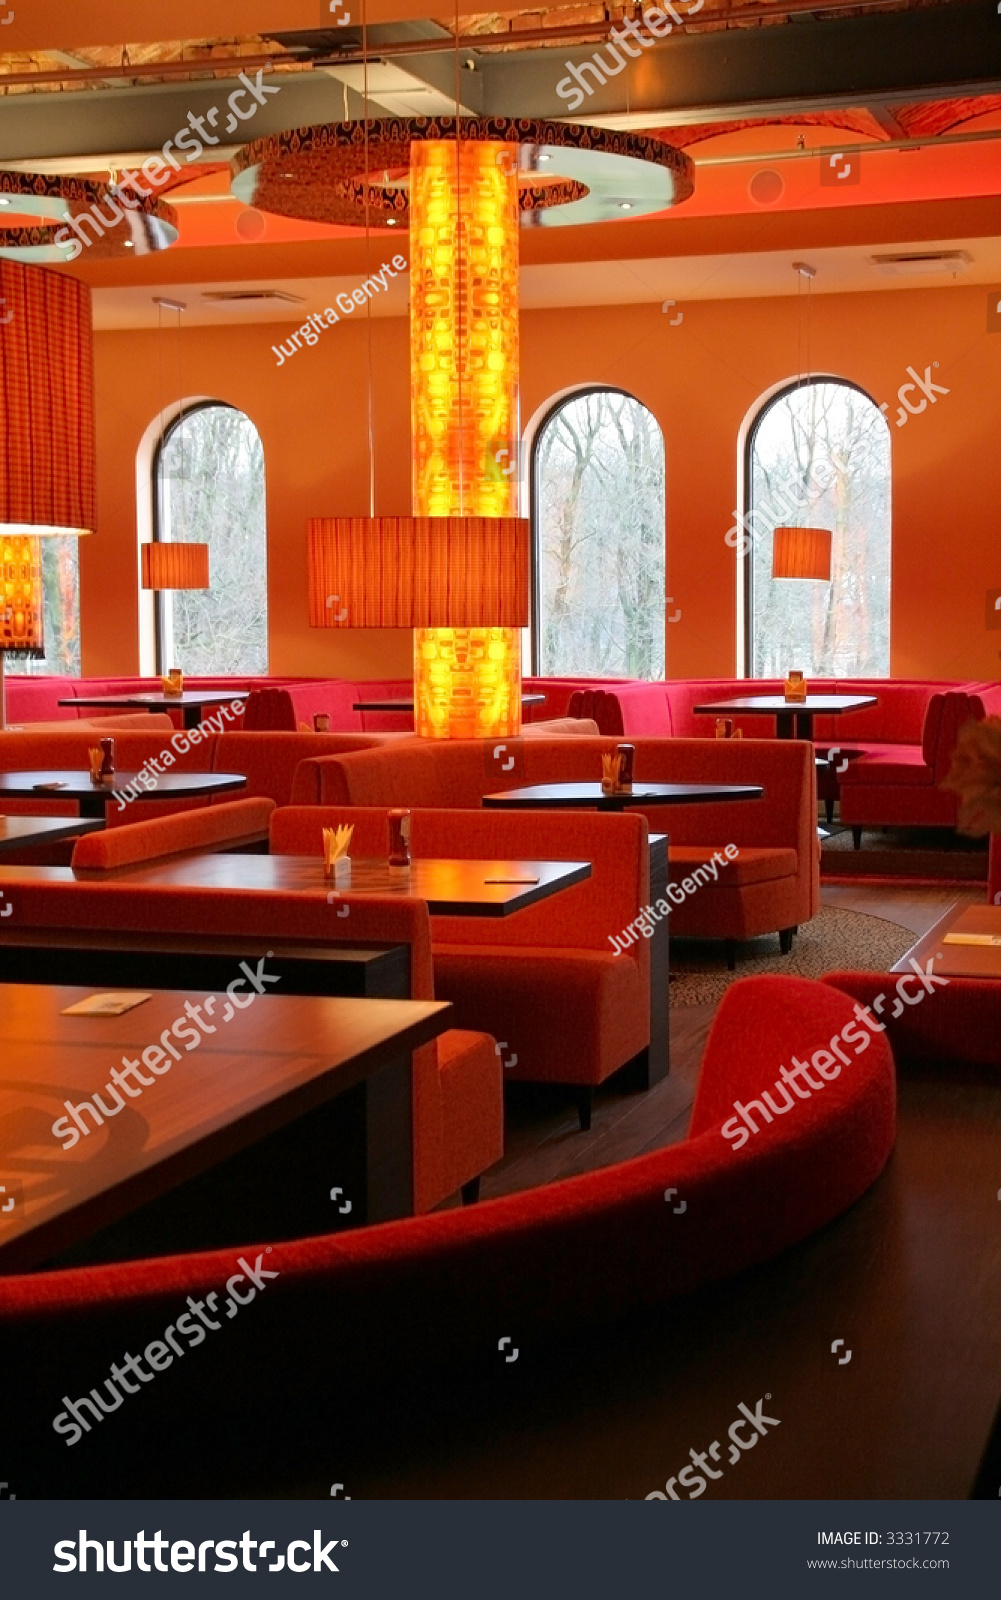 Red restaurant interior with column in the center stock